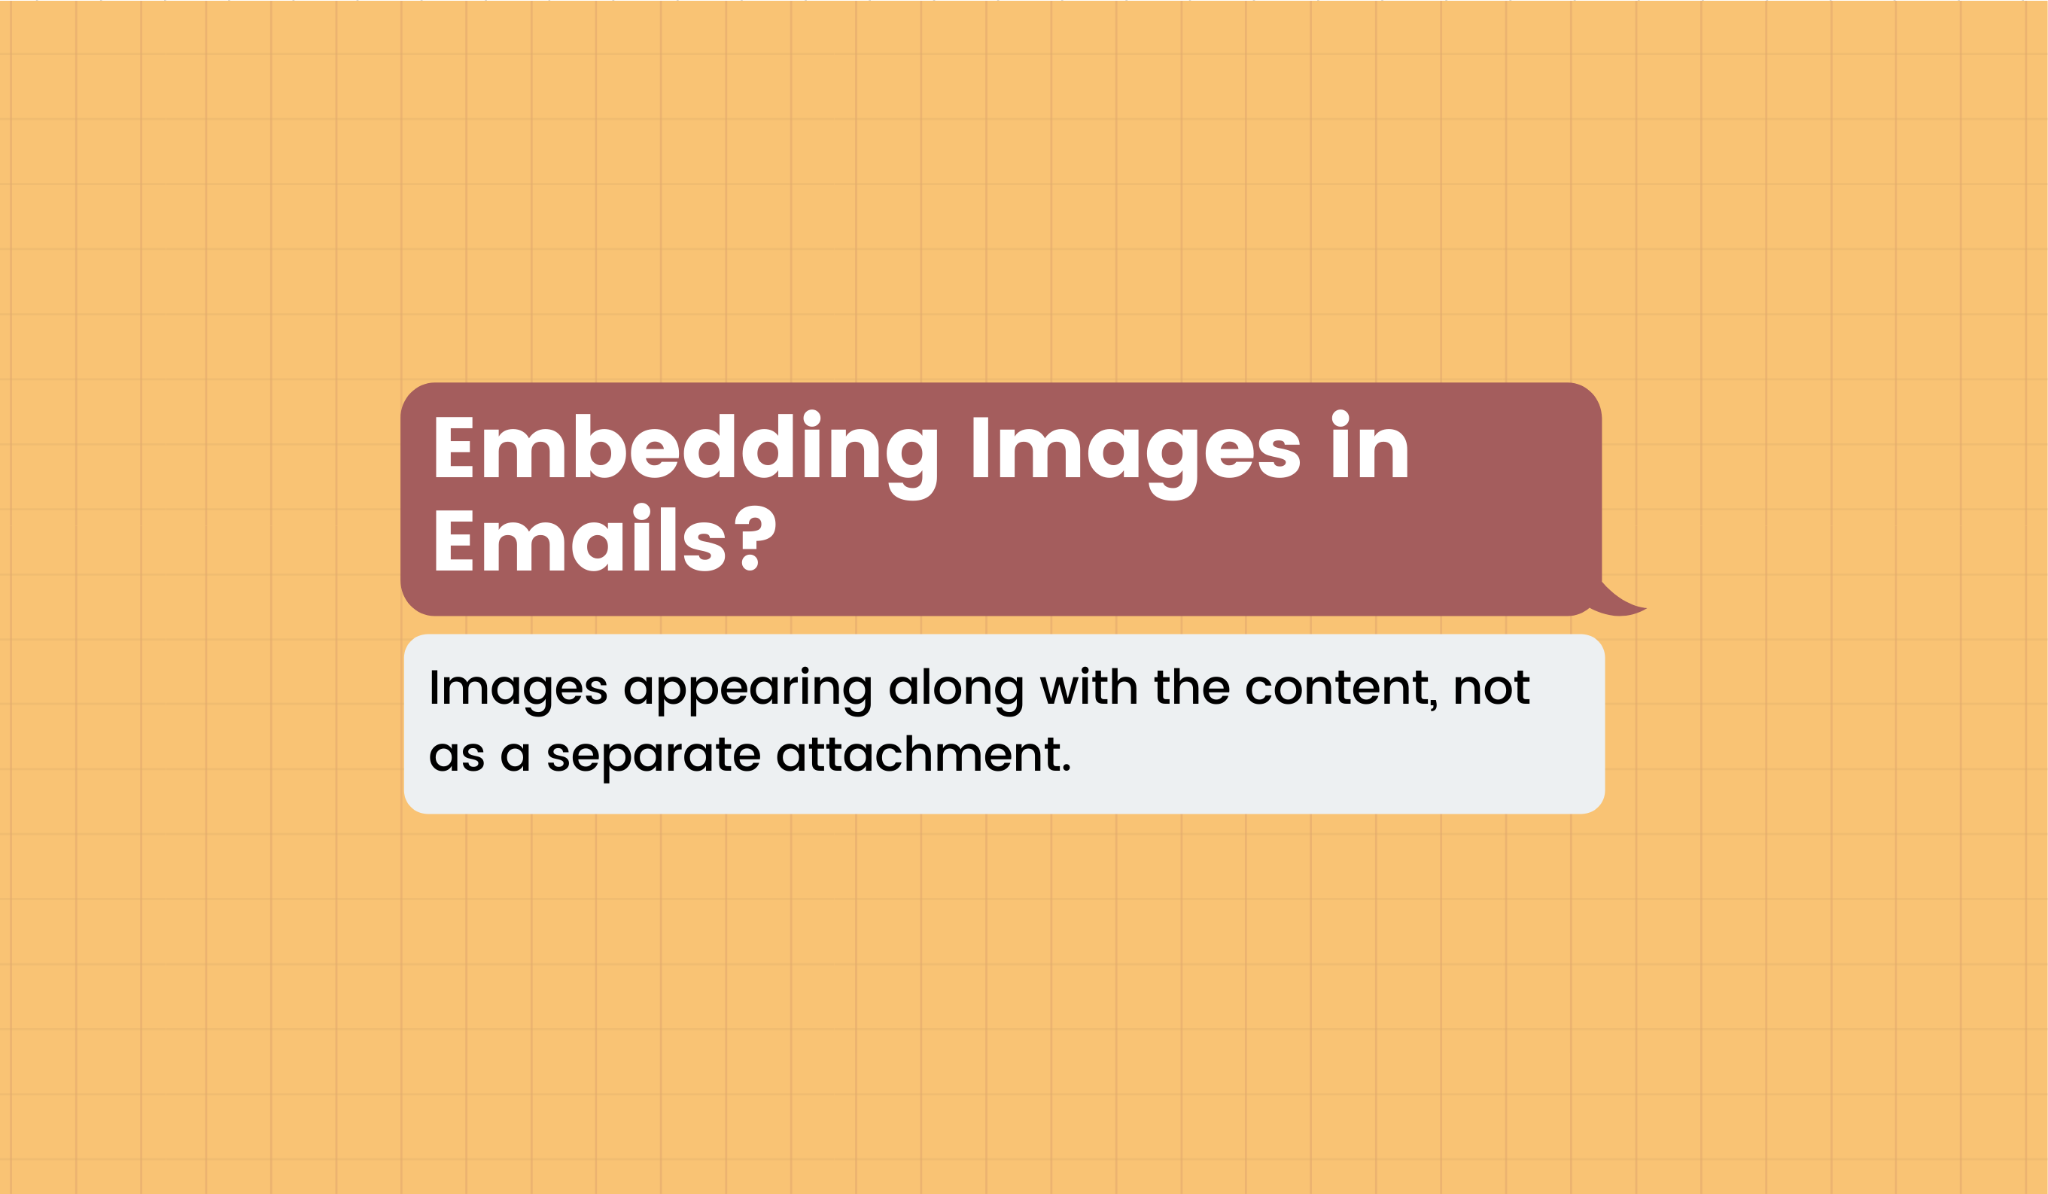 Definition of embedding images in emails